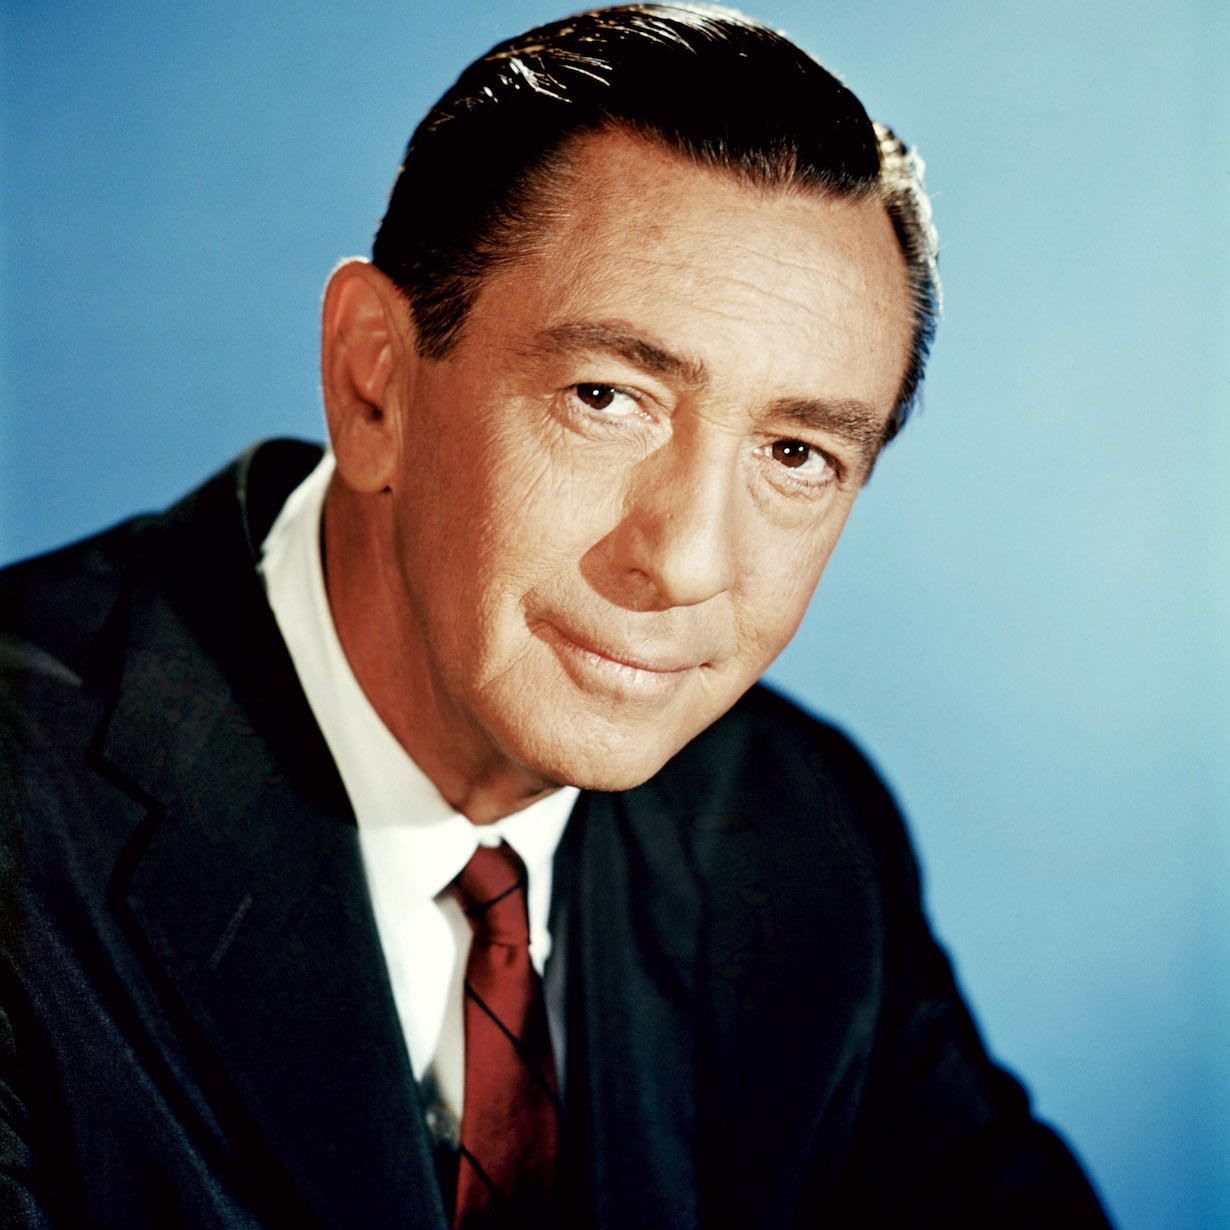 DAYS OF OUR LIVES, MacDonald Carey, 1965-. © NBC / Courtesy: Everett Collection